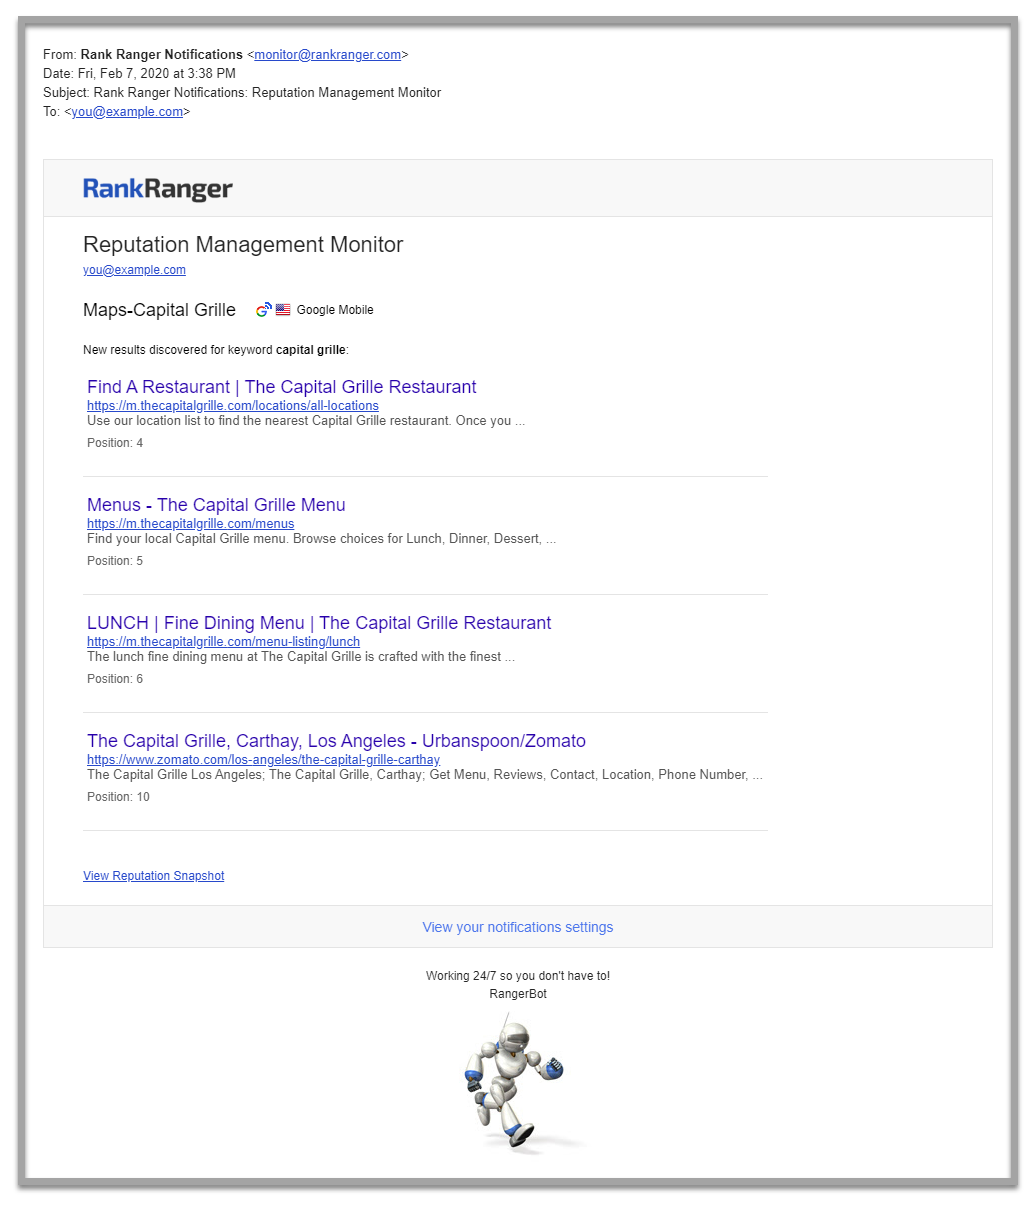 Reputation management email showing brand mentions